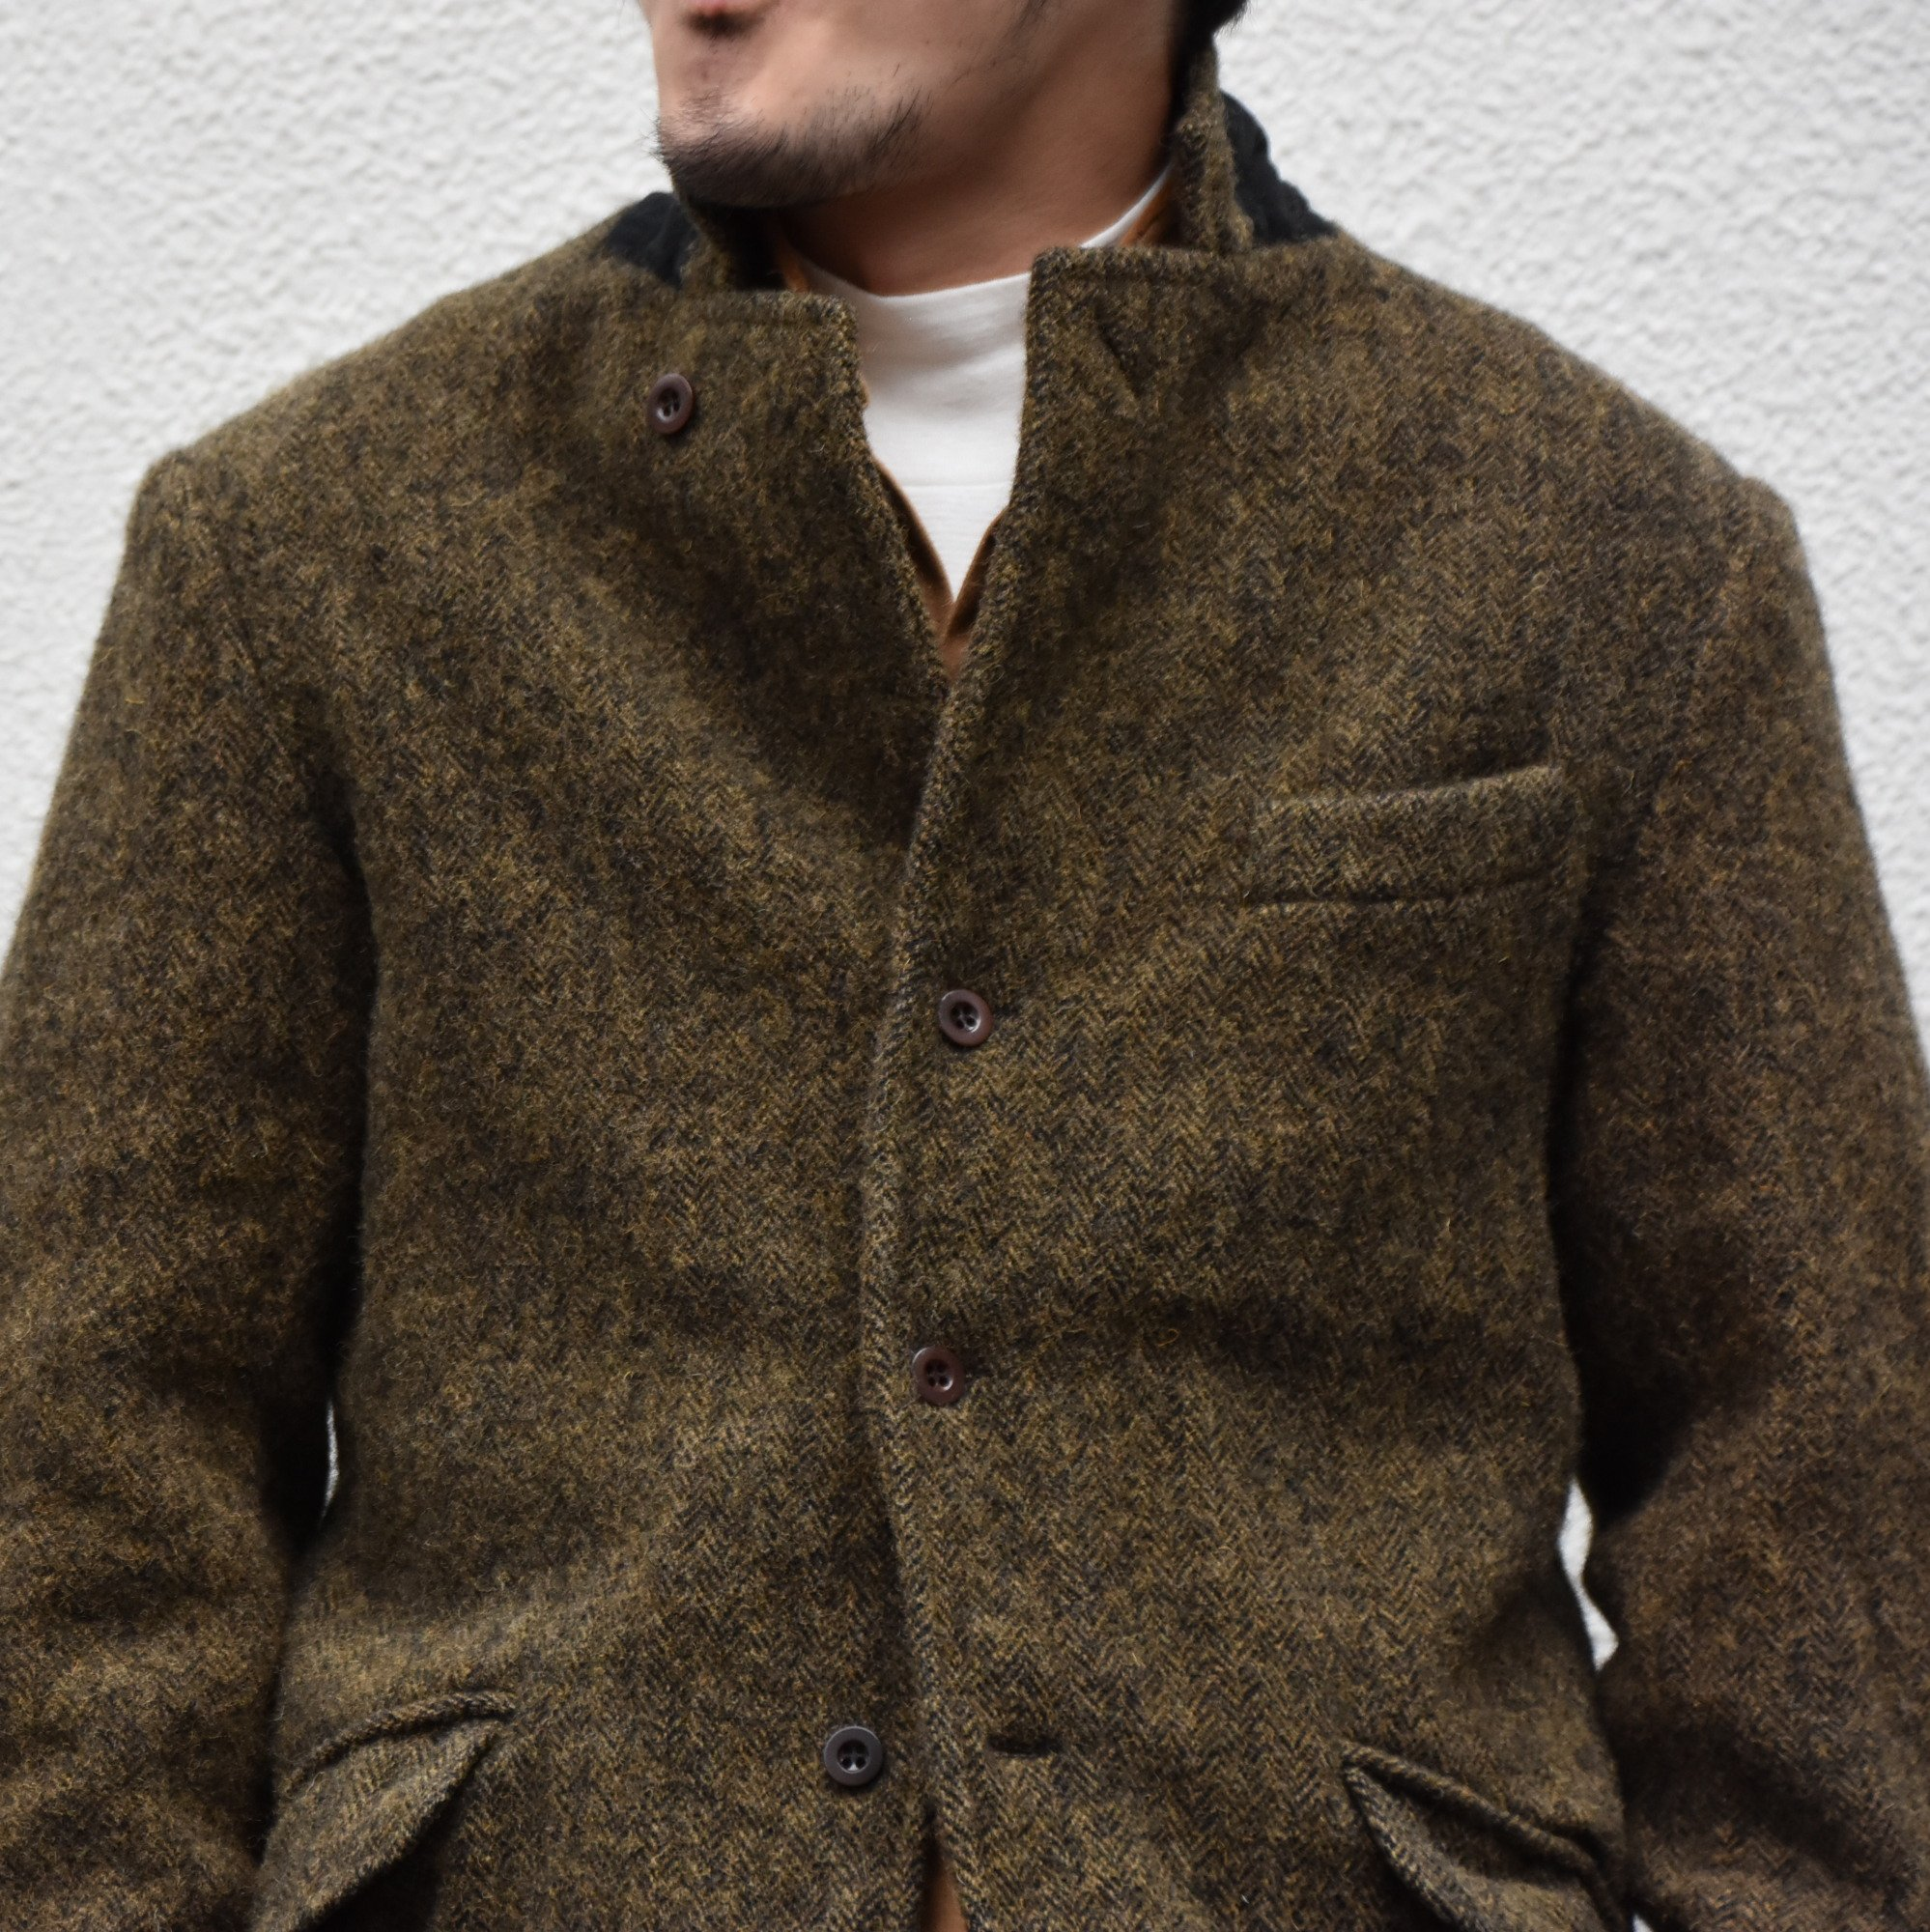 【2020】Chez Vidalenc (シェヴィダレンク)/ HARRIS TWEED JACKET-GREEN FOX- #JK01(2)